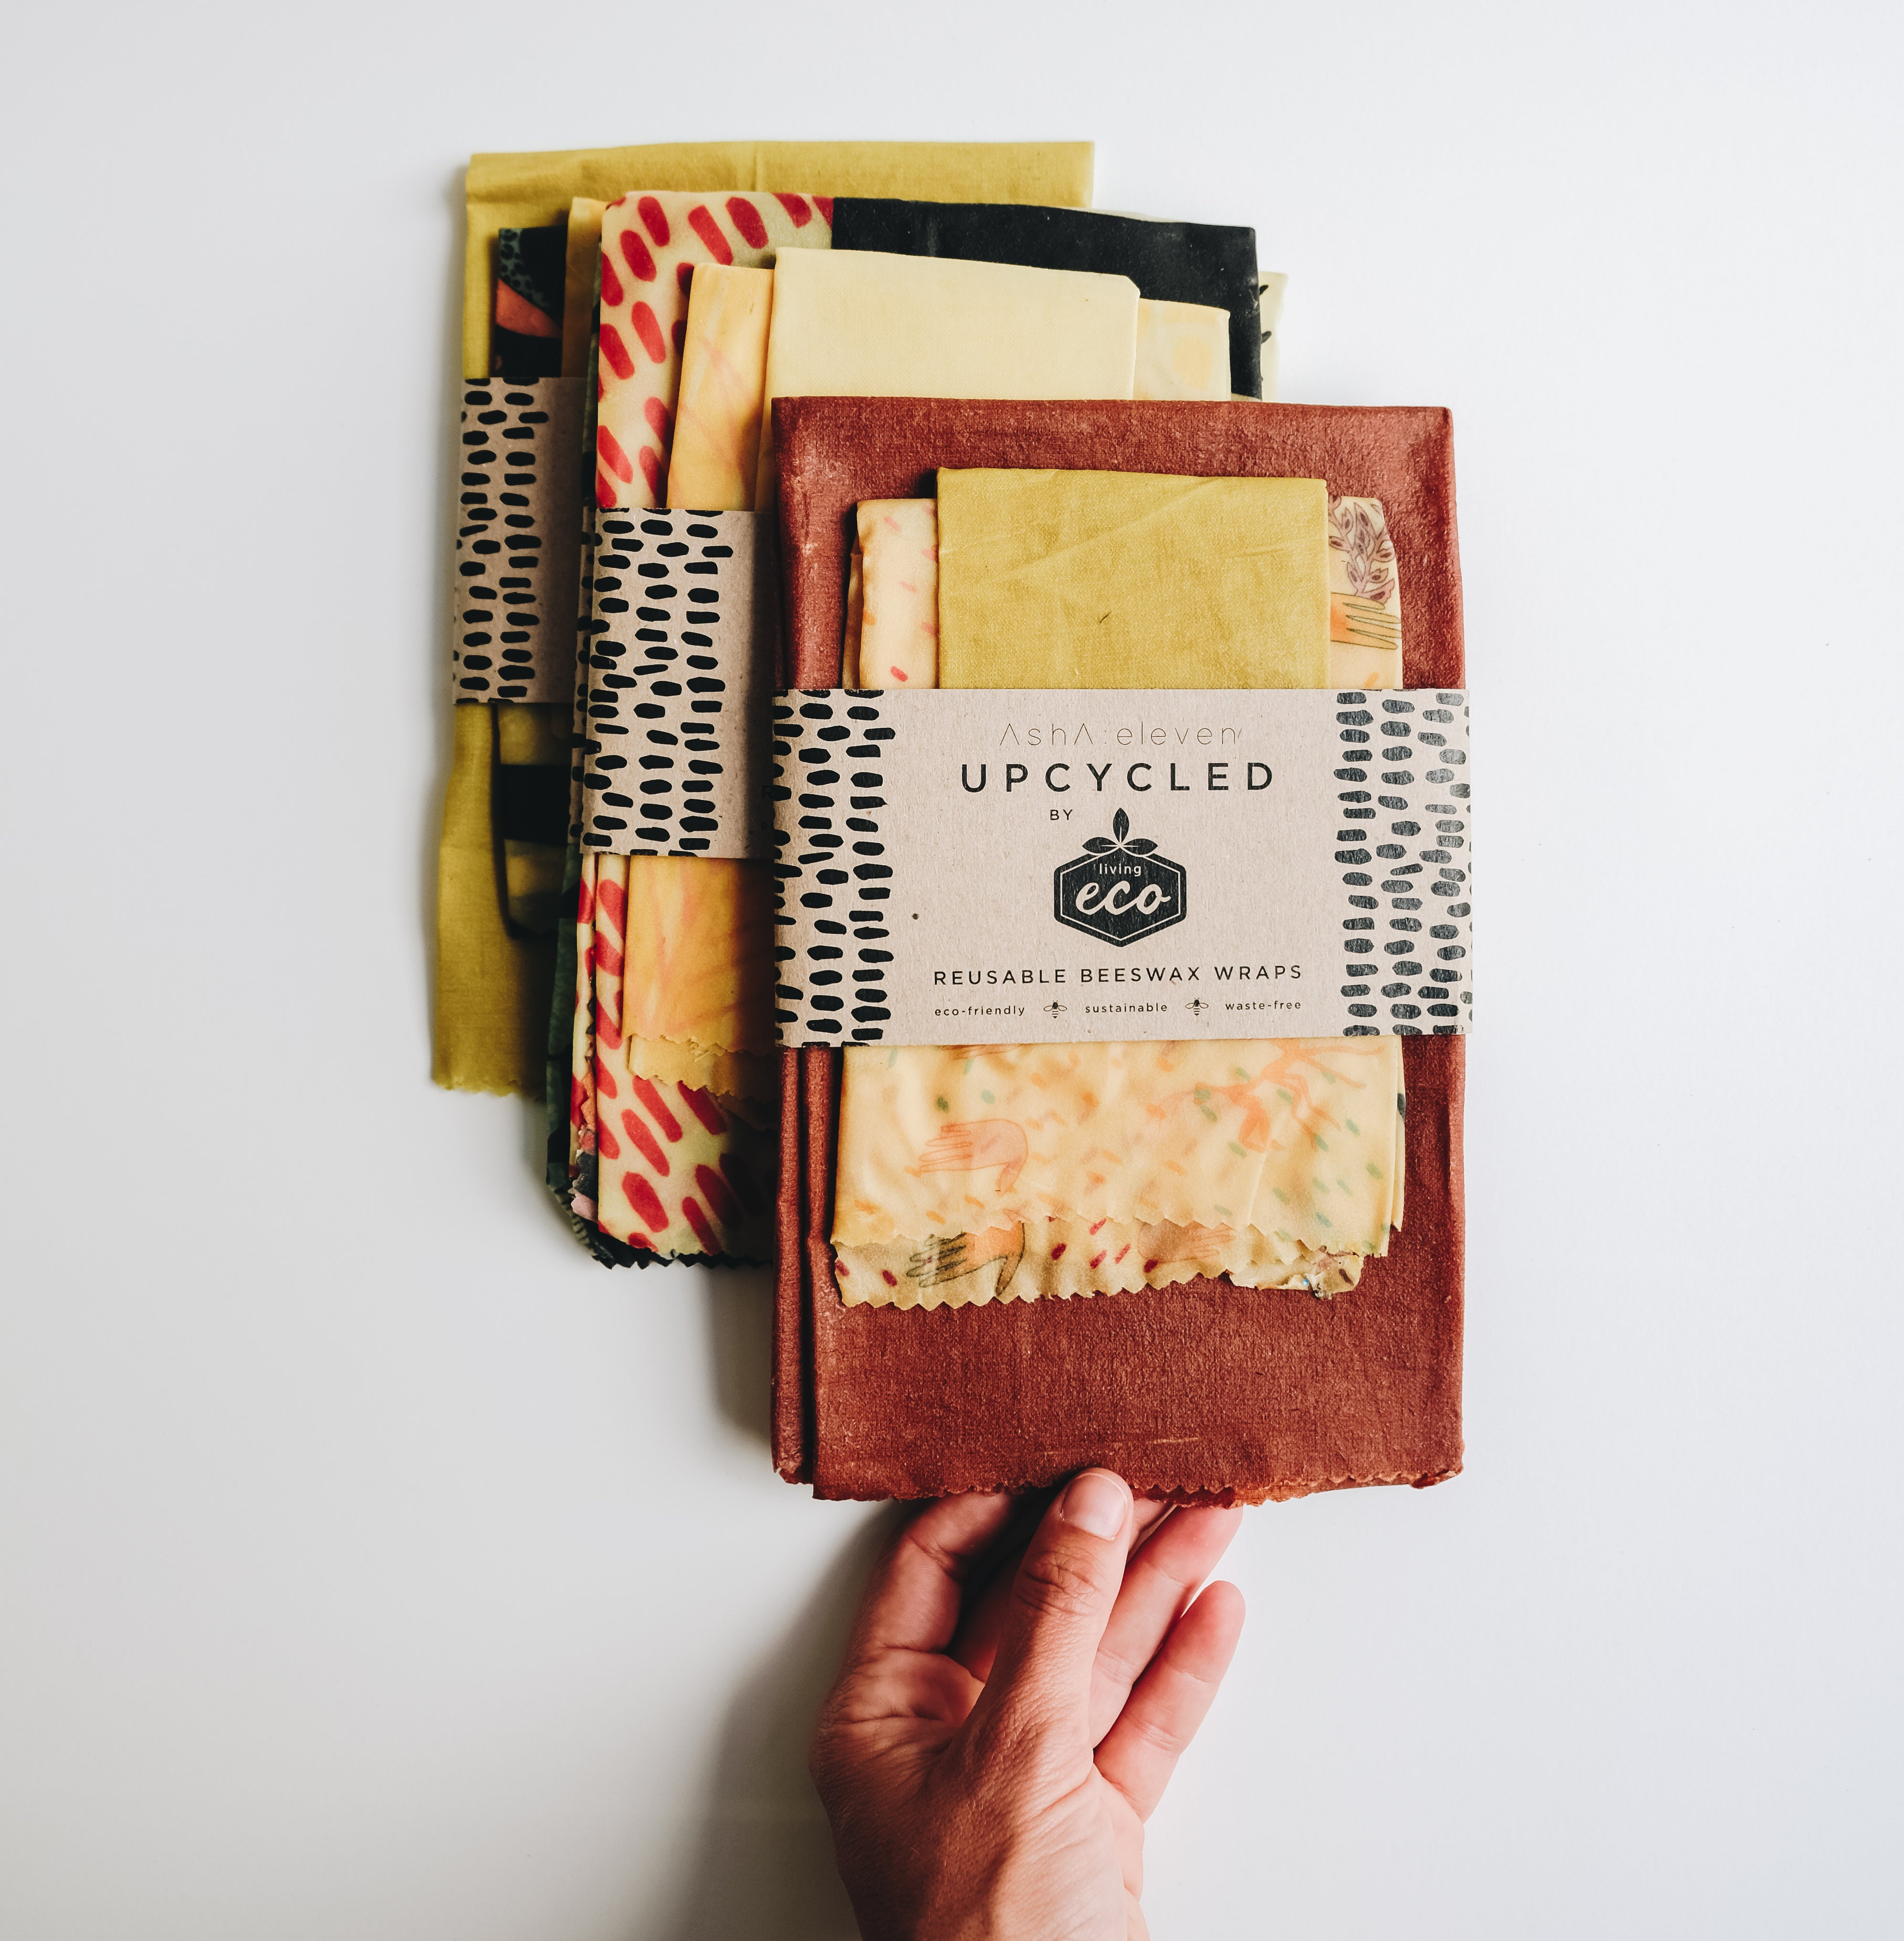 Up-cycled | Reusable Beeswax Wraps